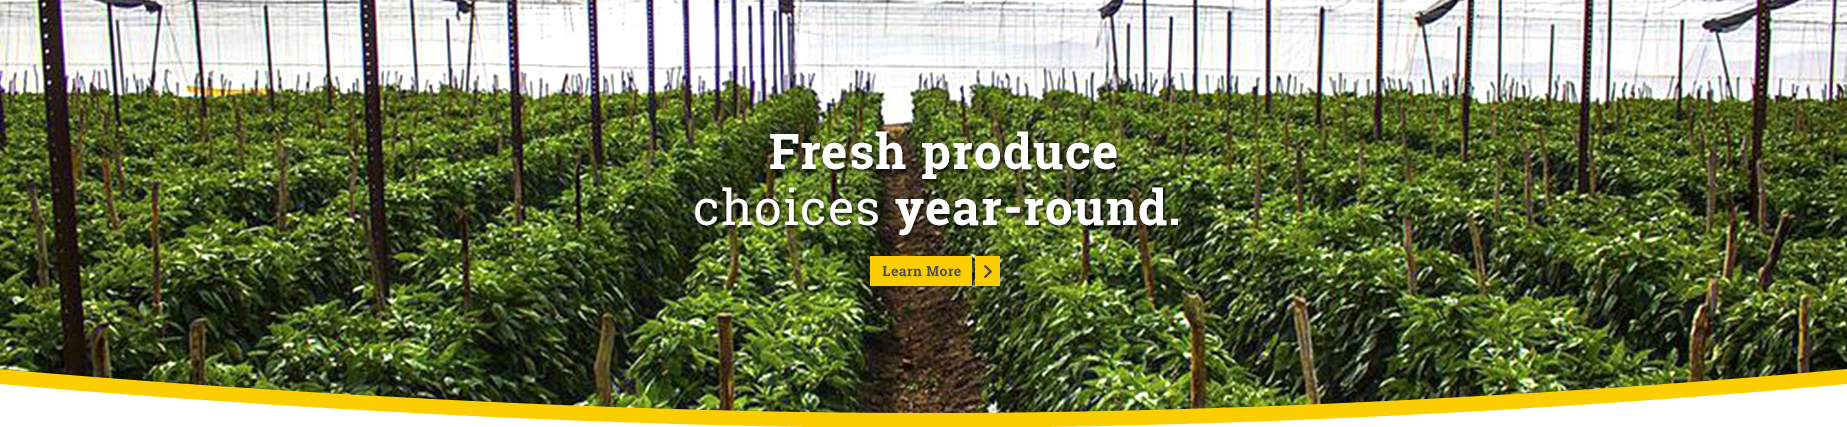 Fresh produce choices year round.